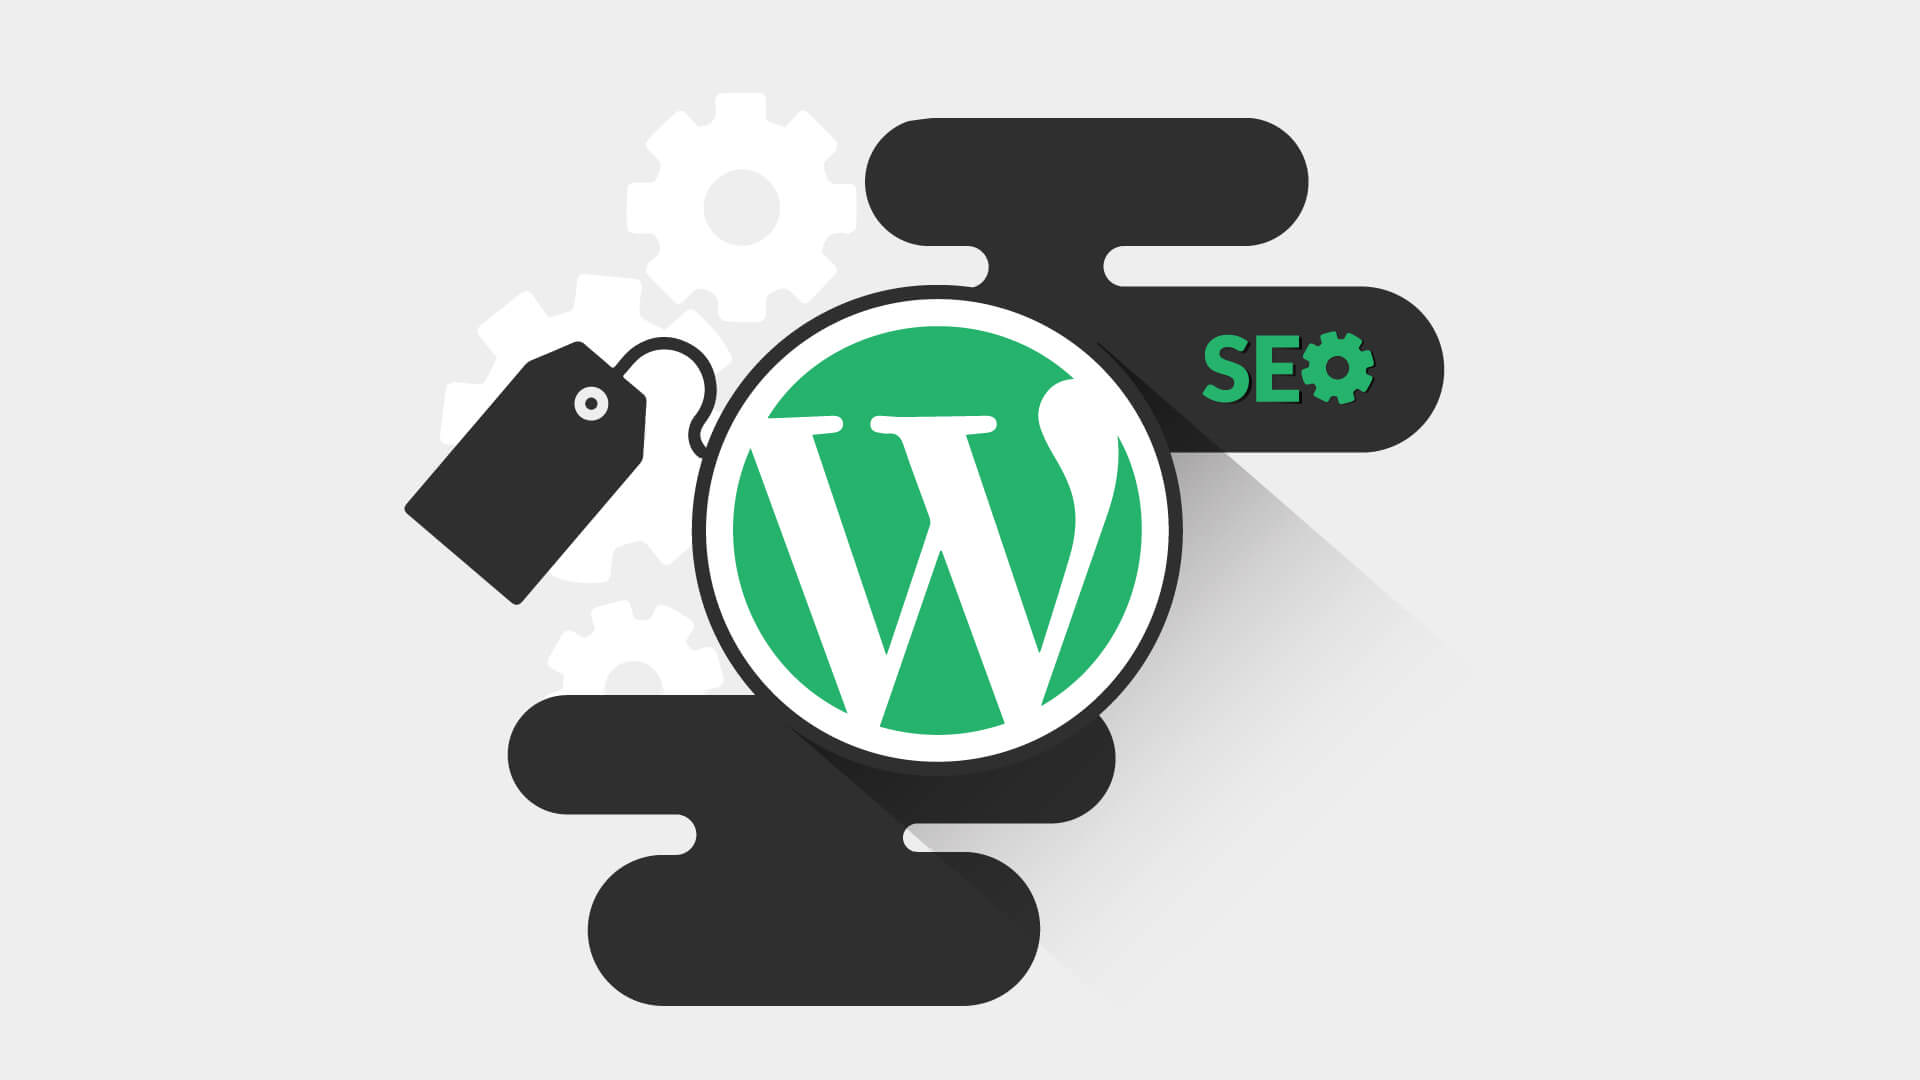 Wordpress tags SEO, learn all about them